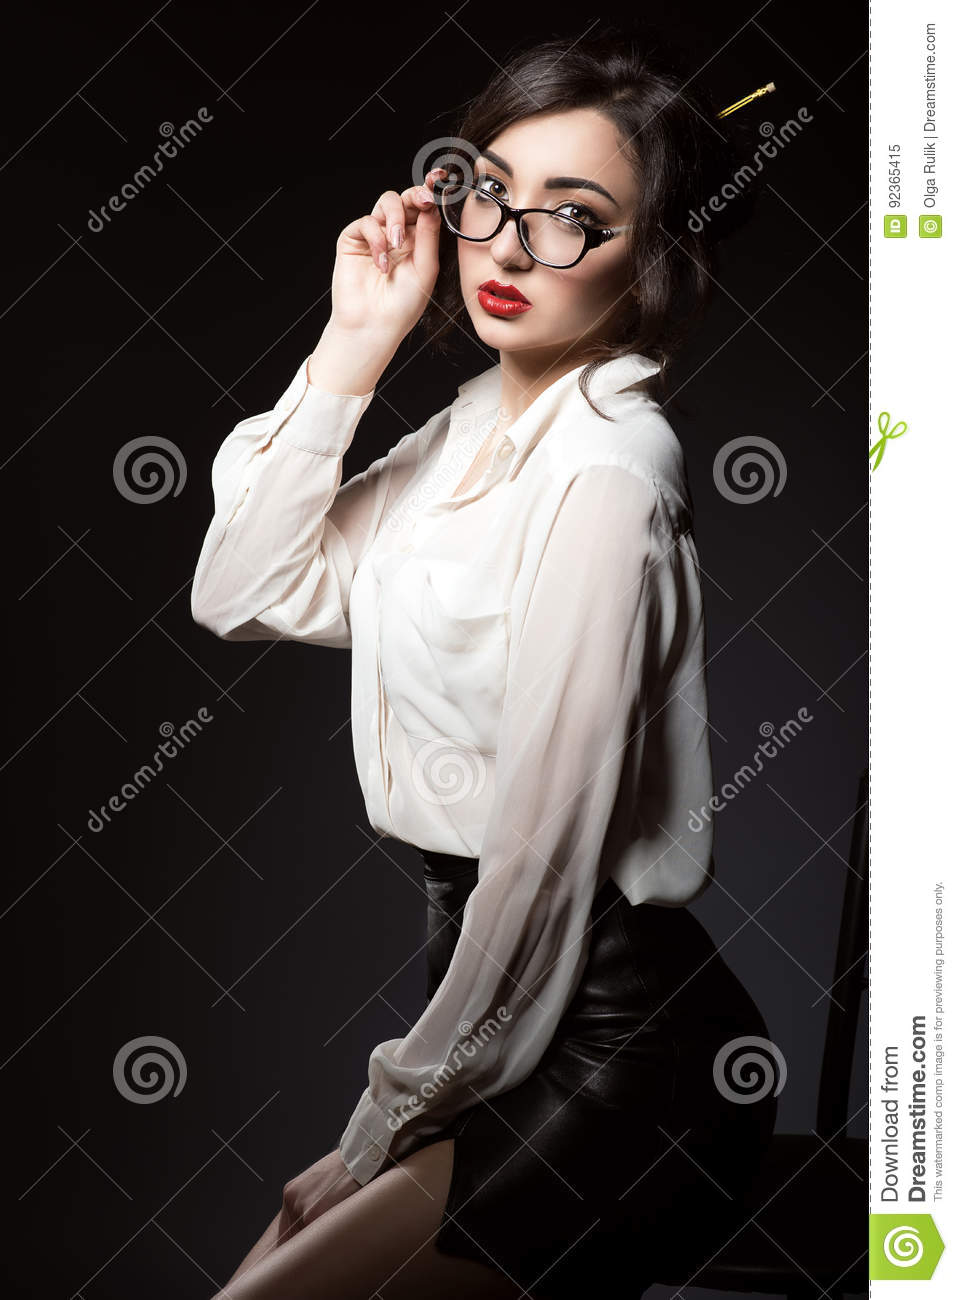 Beautiful young business woman with dark updo hair looking direct over her trendy glasses in modern frame.